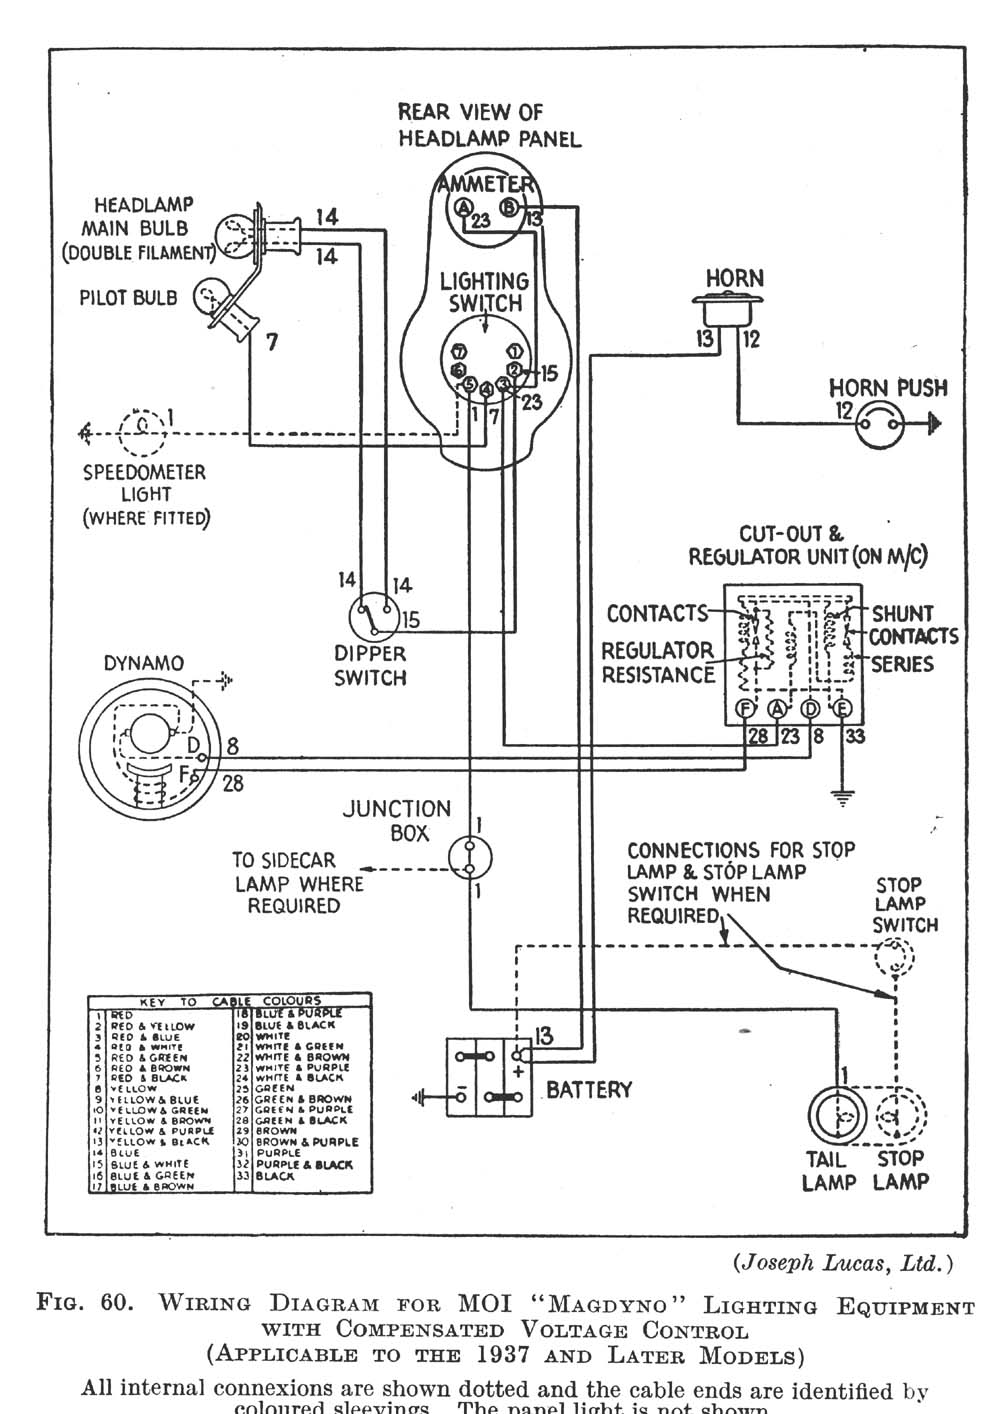 Similiar Hunter Fan Schematic Keywords 038130 Switch Wiring Diagram Diagrams For Ceiling Fans Get Free Image